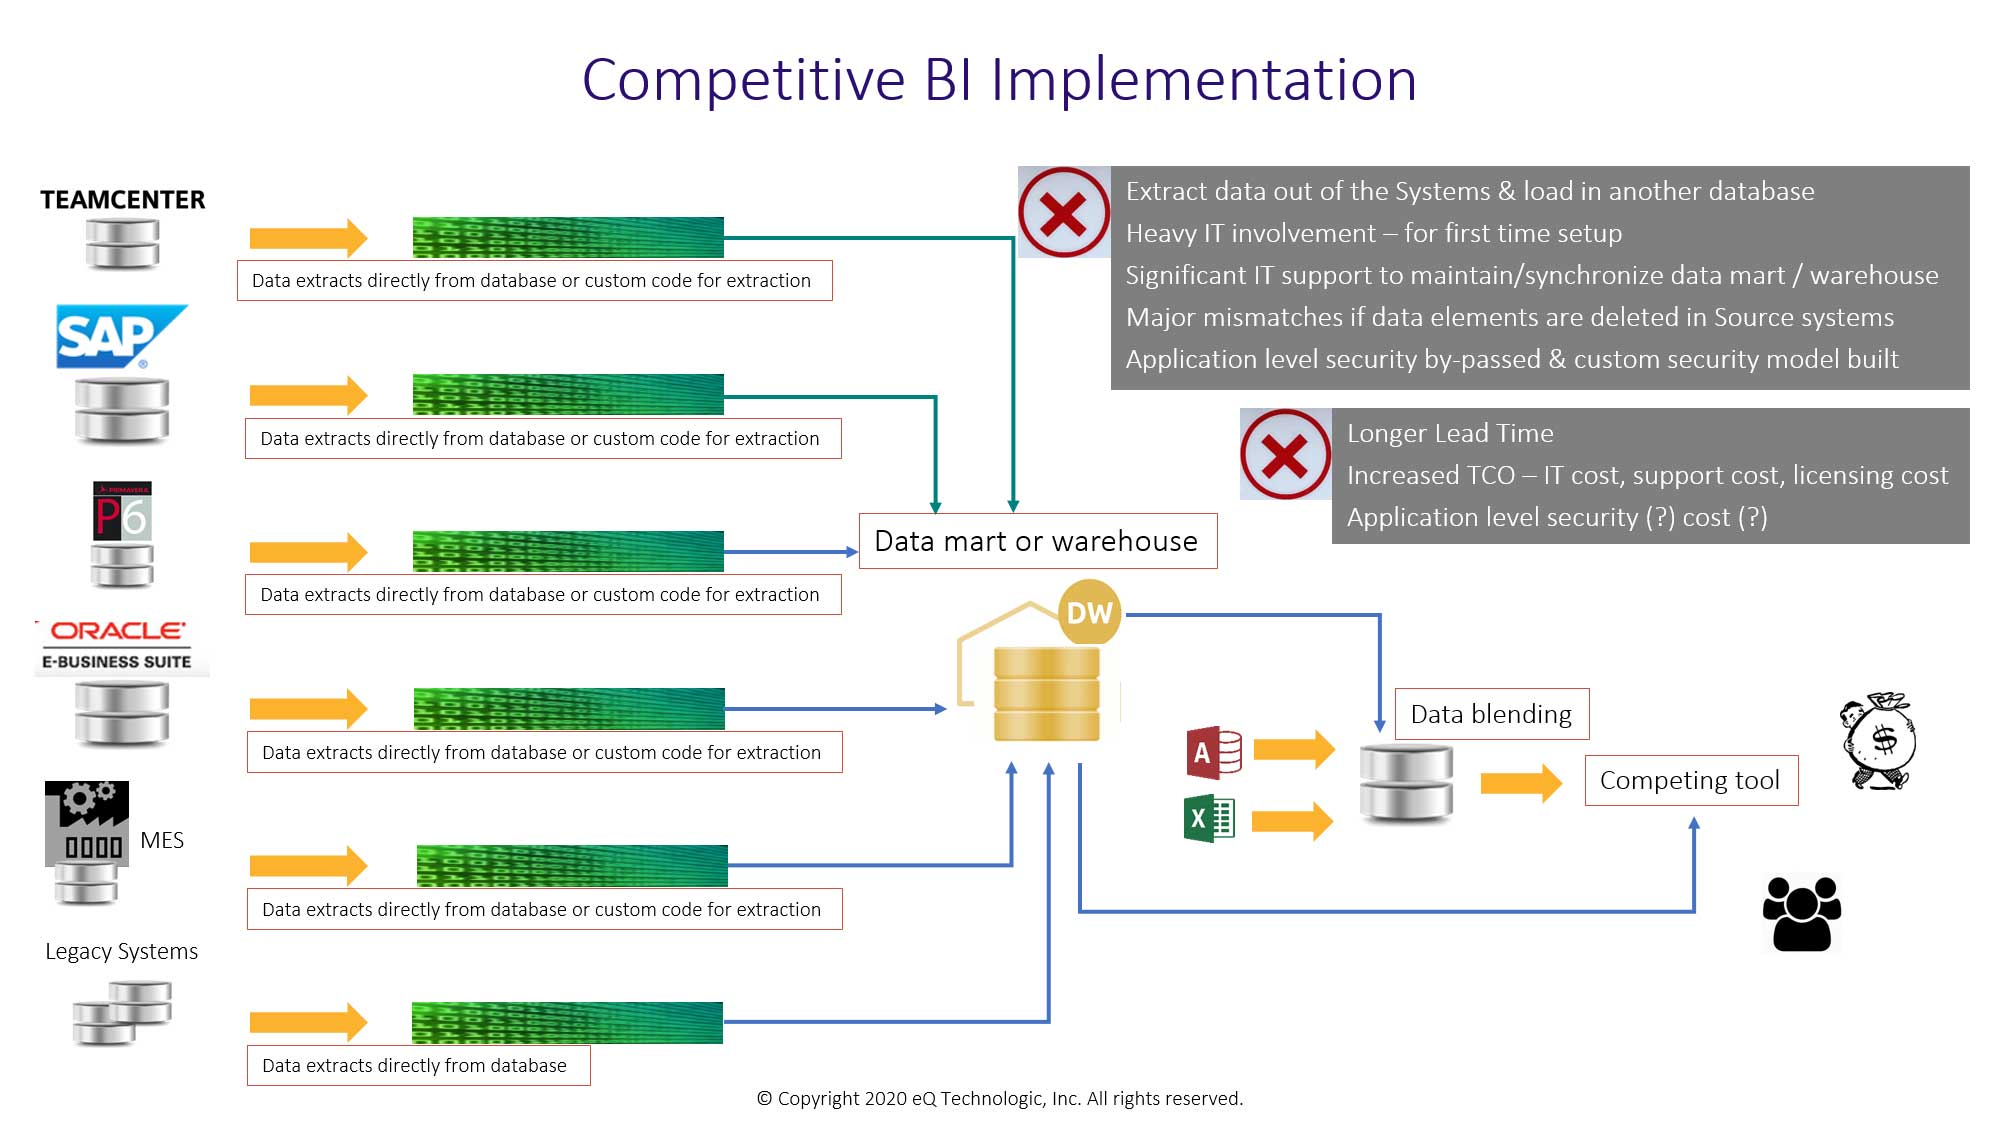 Competitive BI implementations